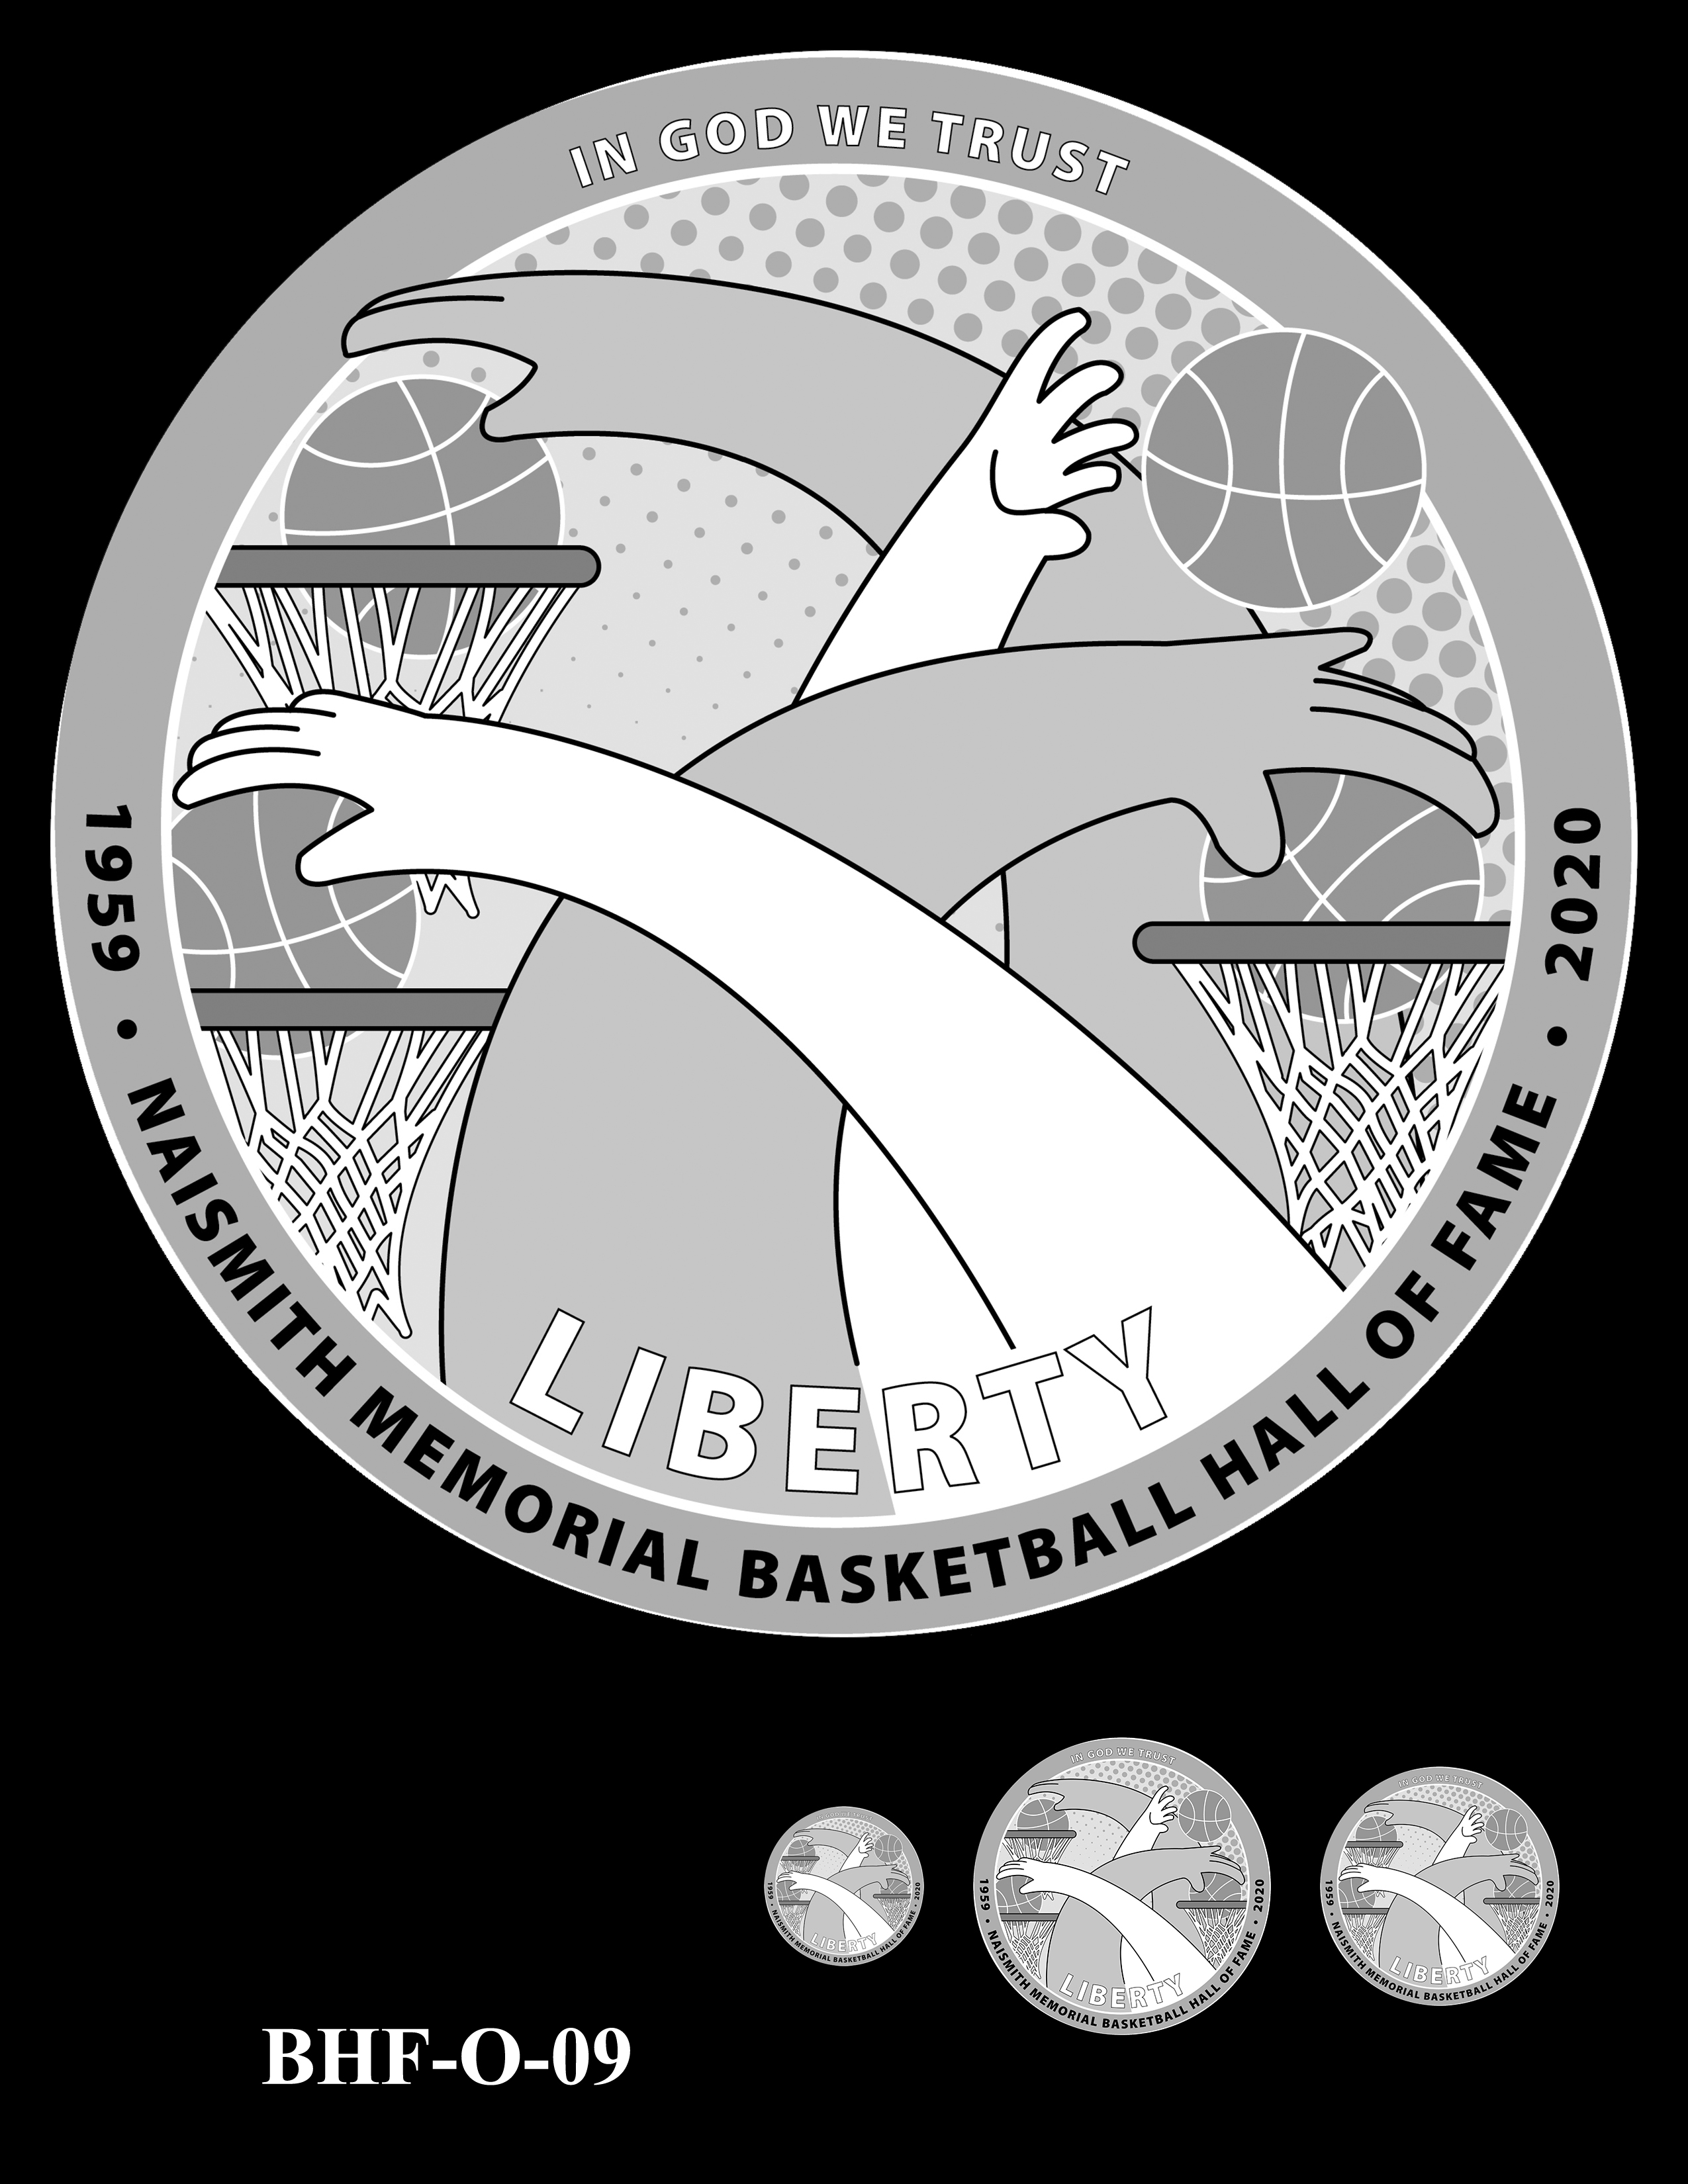 BHF-O-09 -- 2020 Basketball Hall of Fame Commemorative Coin Program - Common Obverse